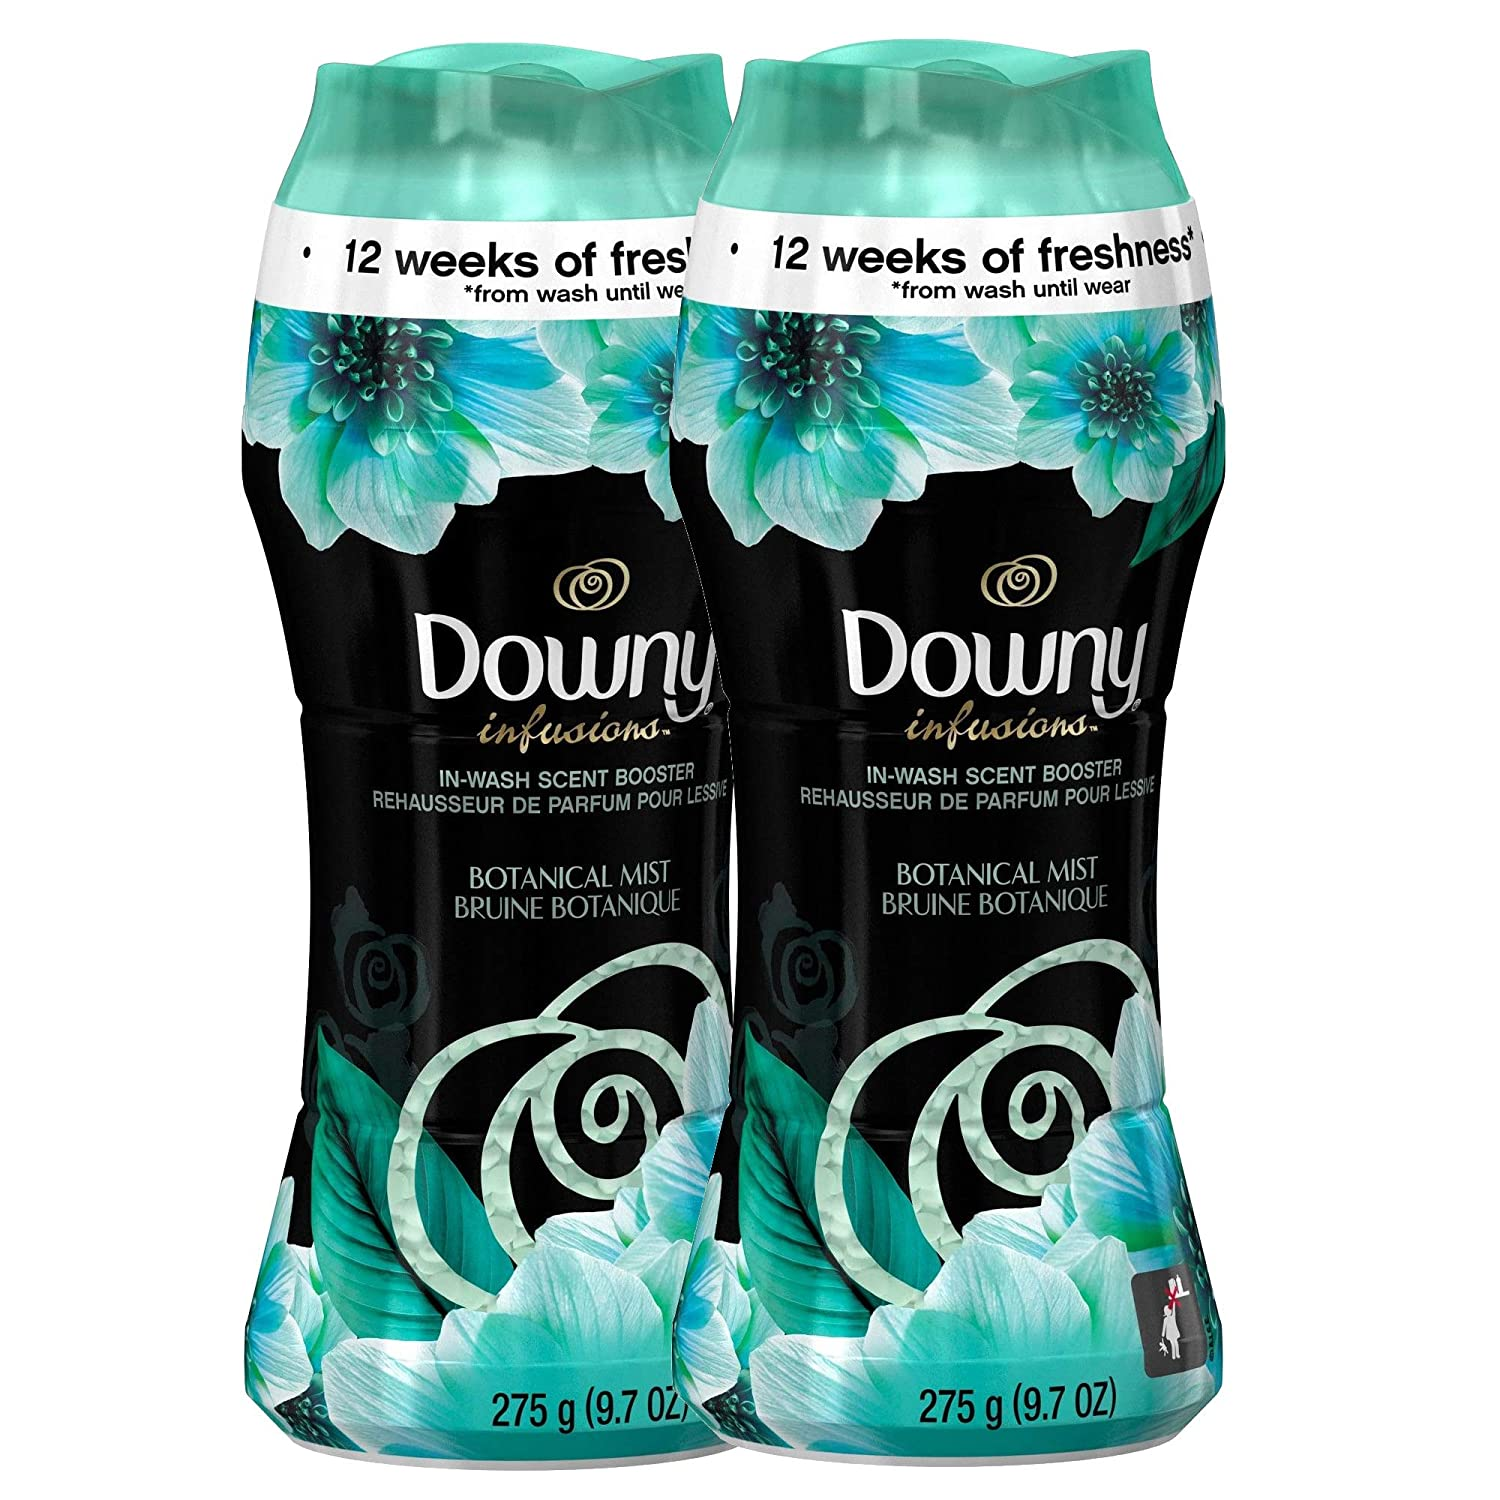 Downy Infusions in Wash Scent Booster Beads - Botanical Mist 9.7 oz. (Pack of 2)